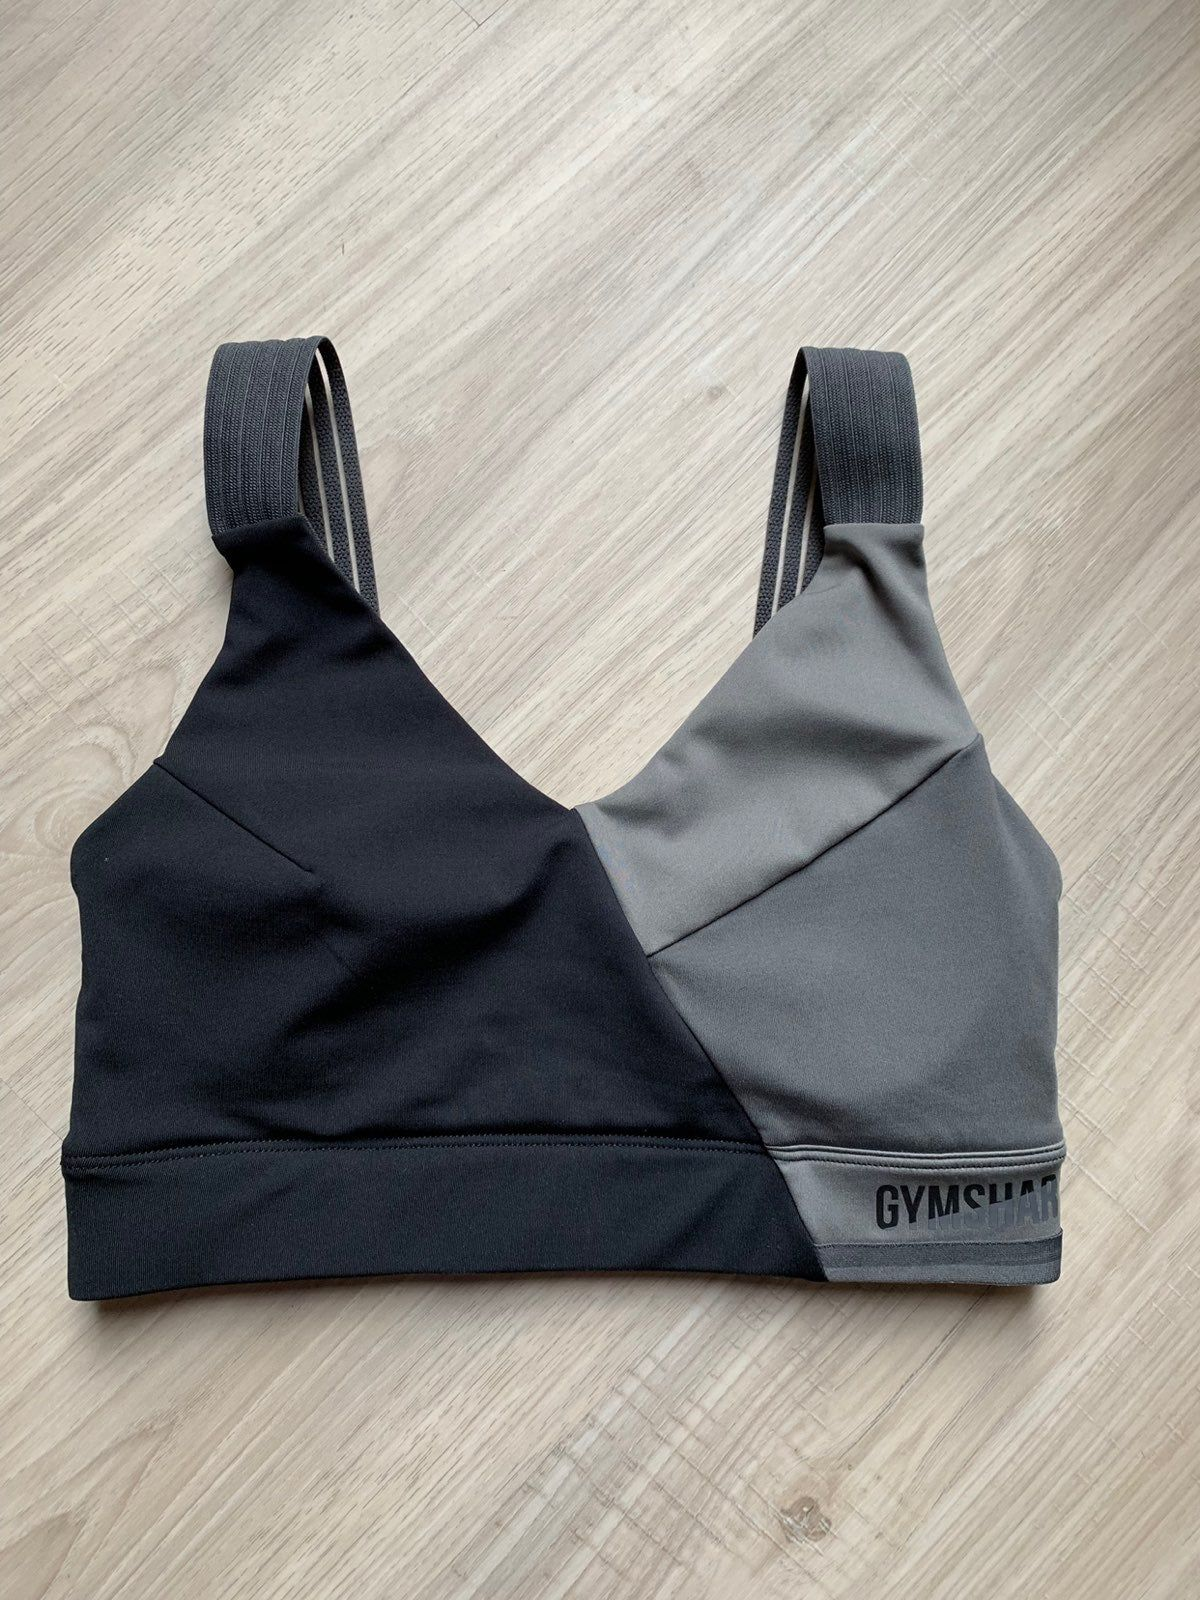 Size: XS Series: Colorblock (Winter 2019) Adjustable straps: No Removable padding  Only worn twice. This bra is just too small for